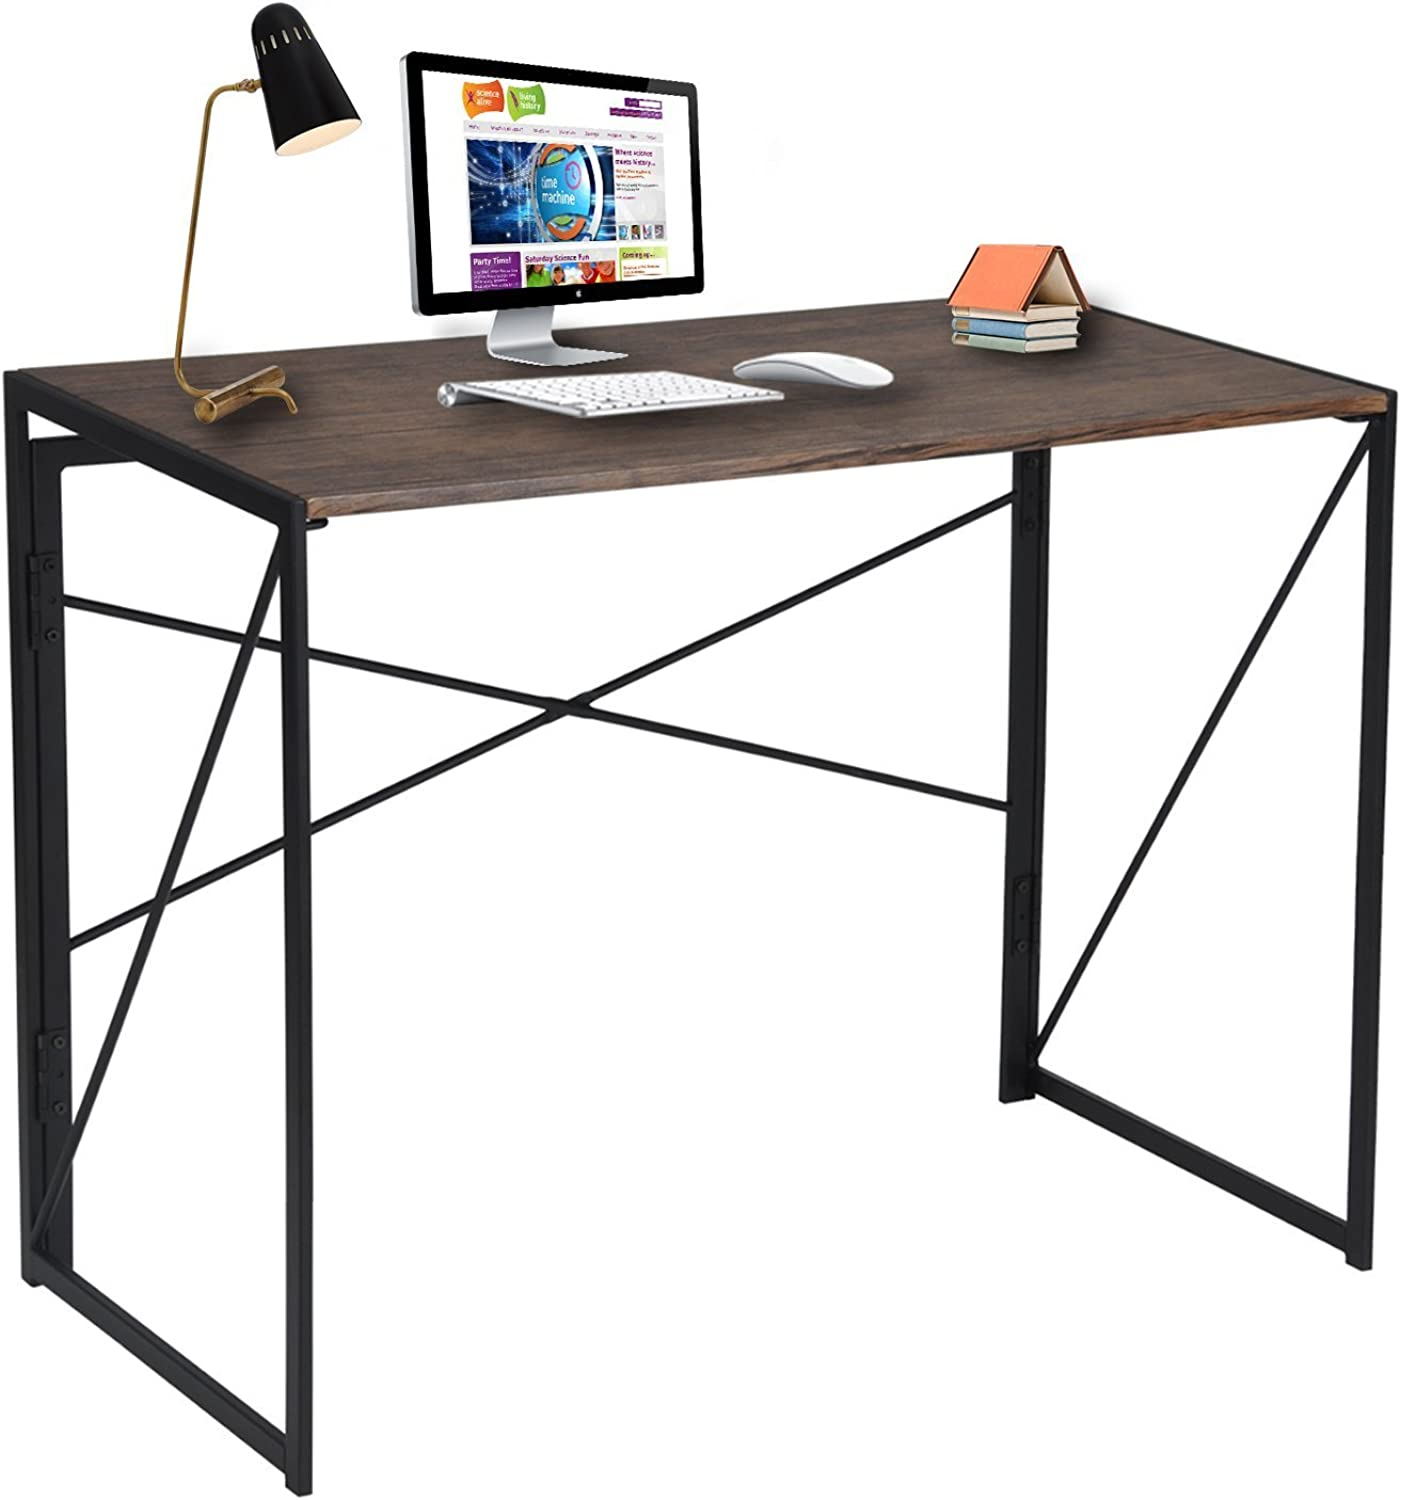 Folding - Computer Desk, Foldable Design, No-Assembly Study Home Office Desk, 100 x 50 x 75 cm, Brown